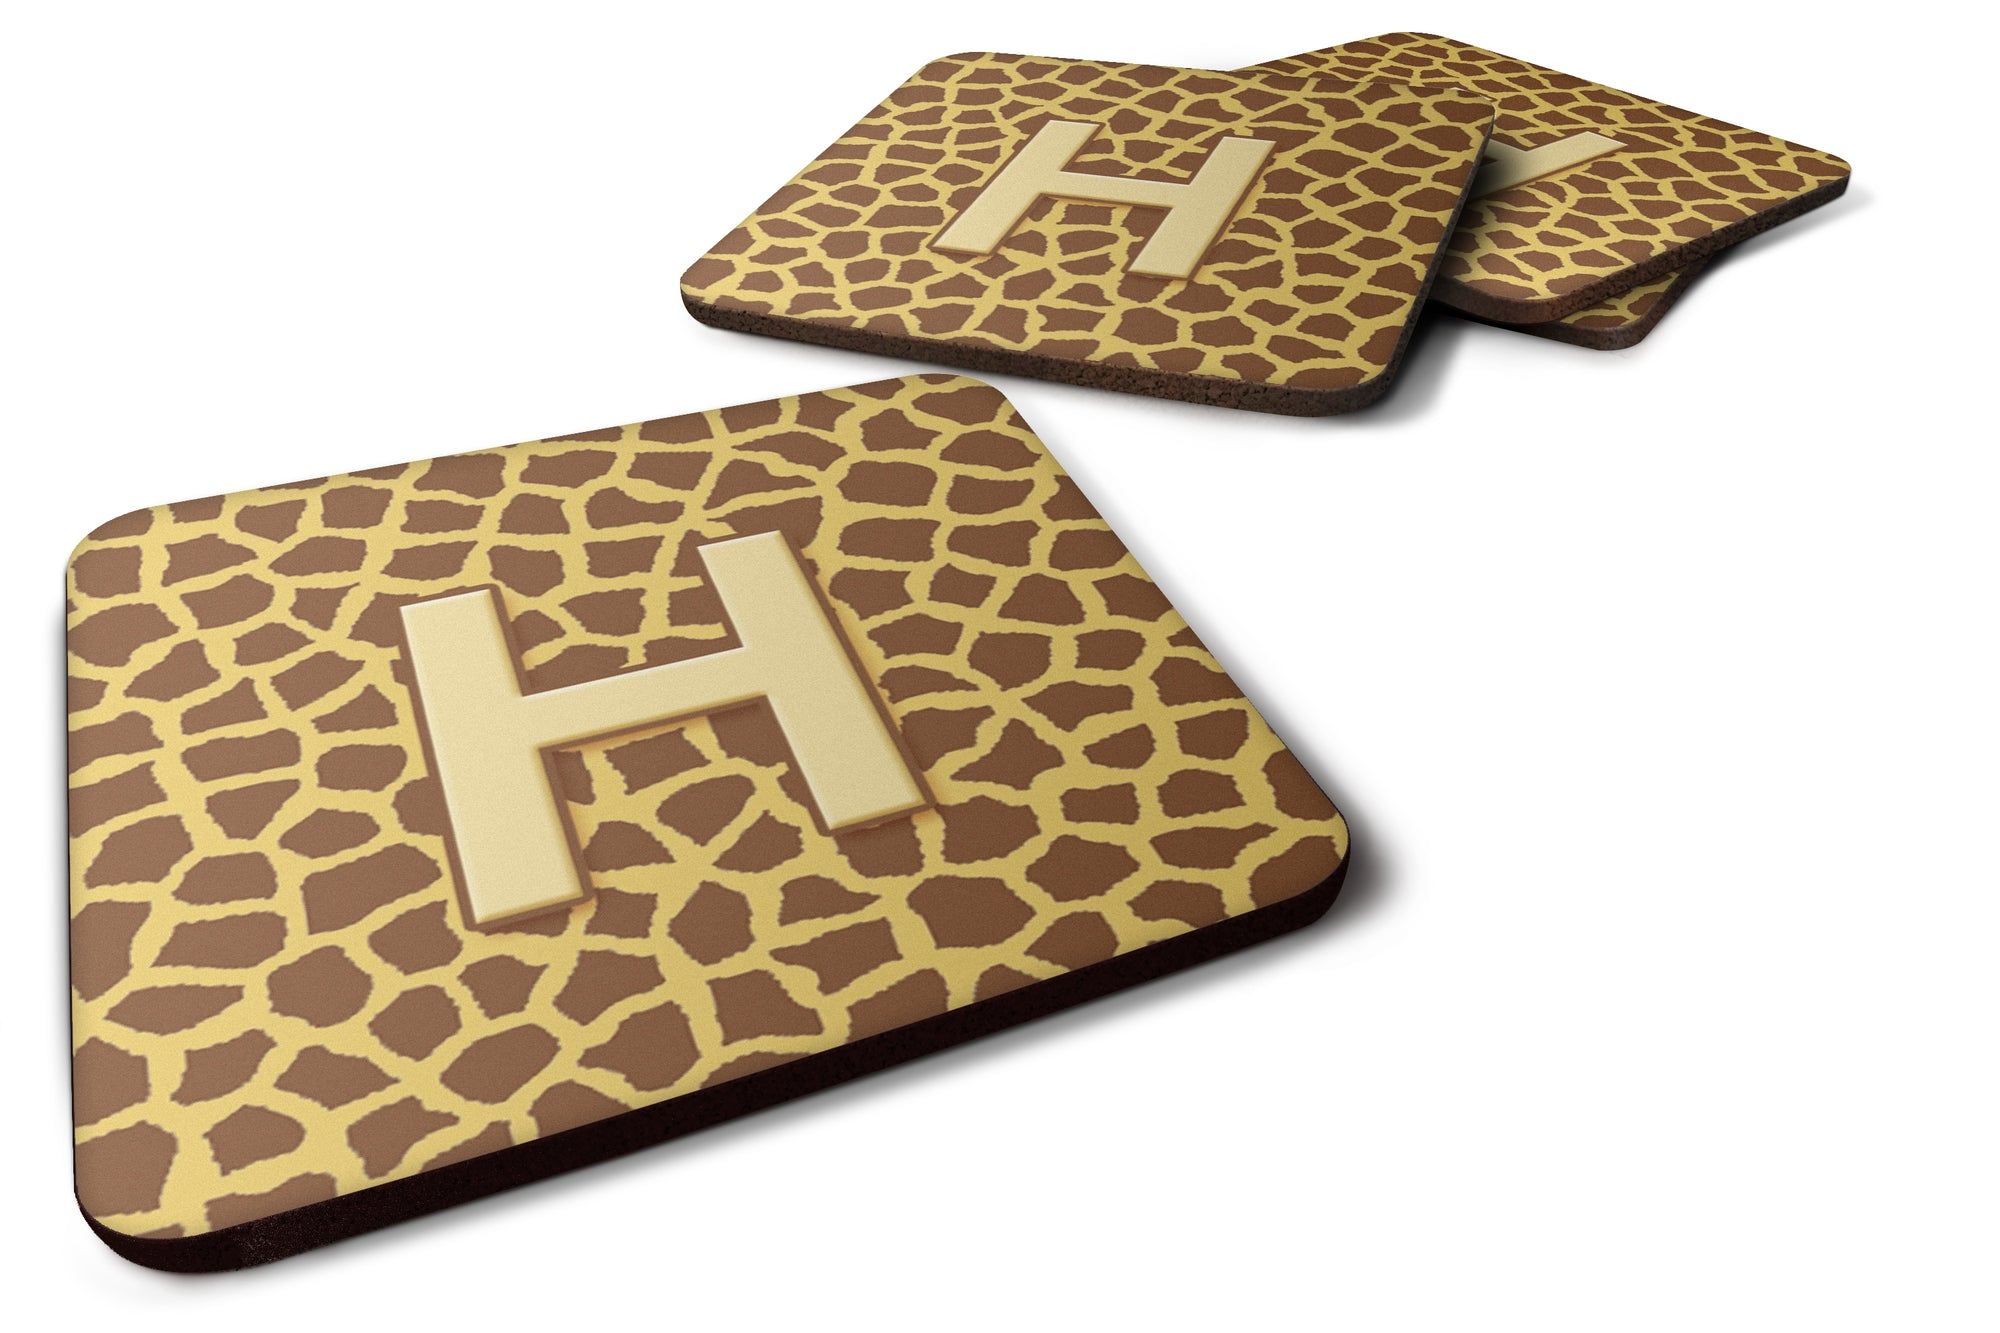 Buy this Set of 4 Monogram - Giraffe Foam Coasters Initial Letter H